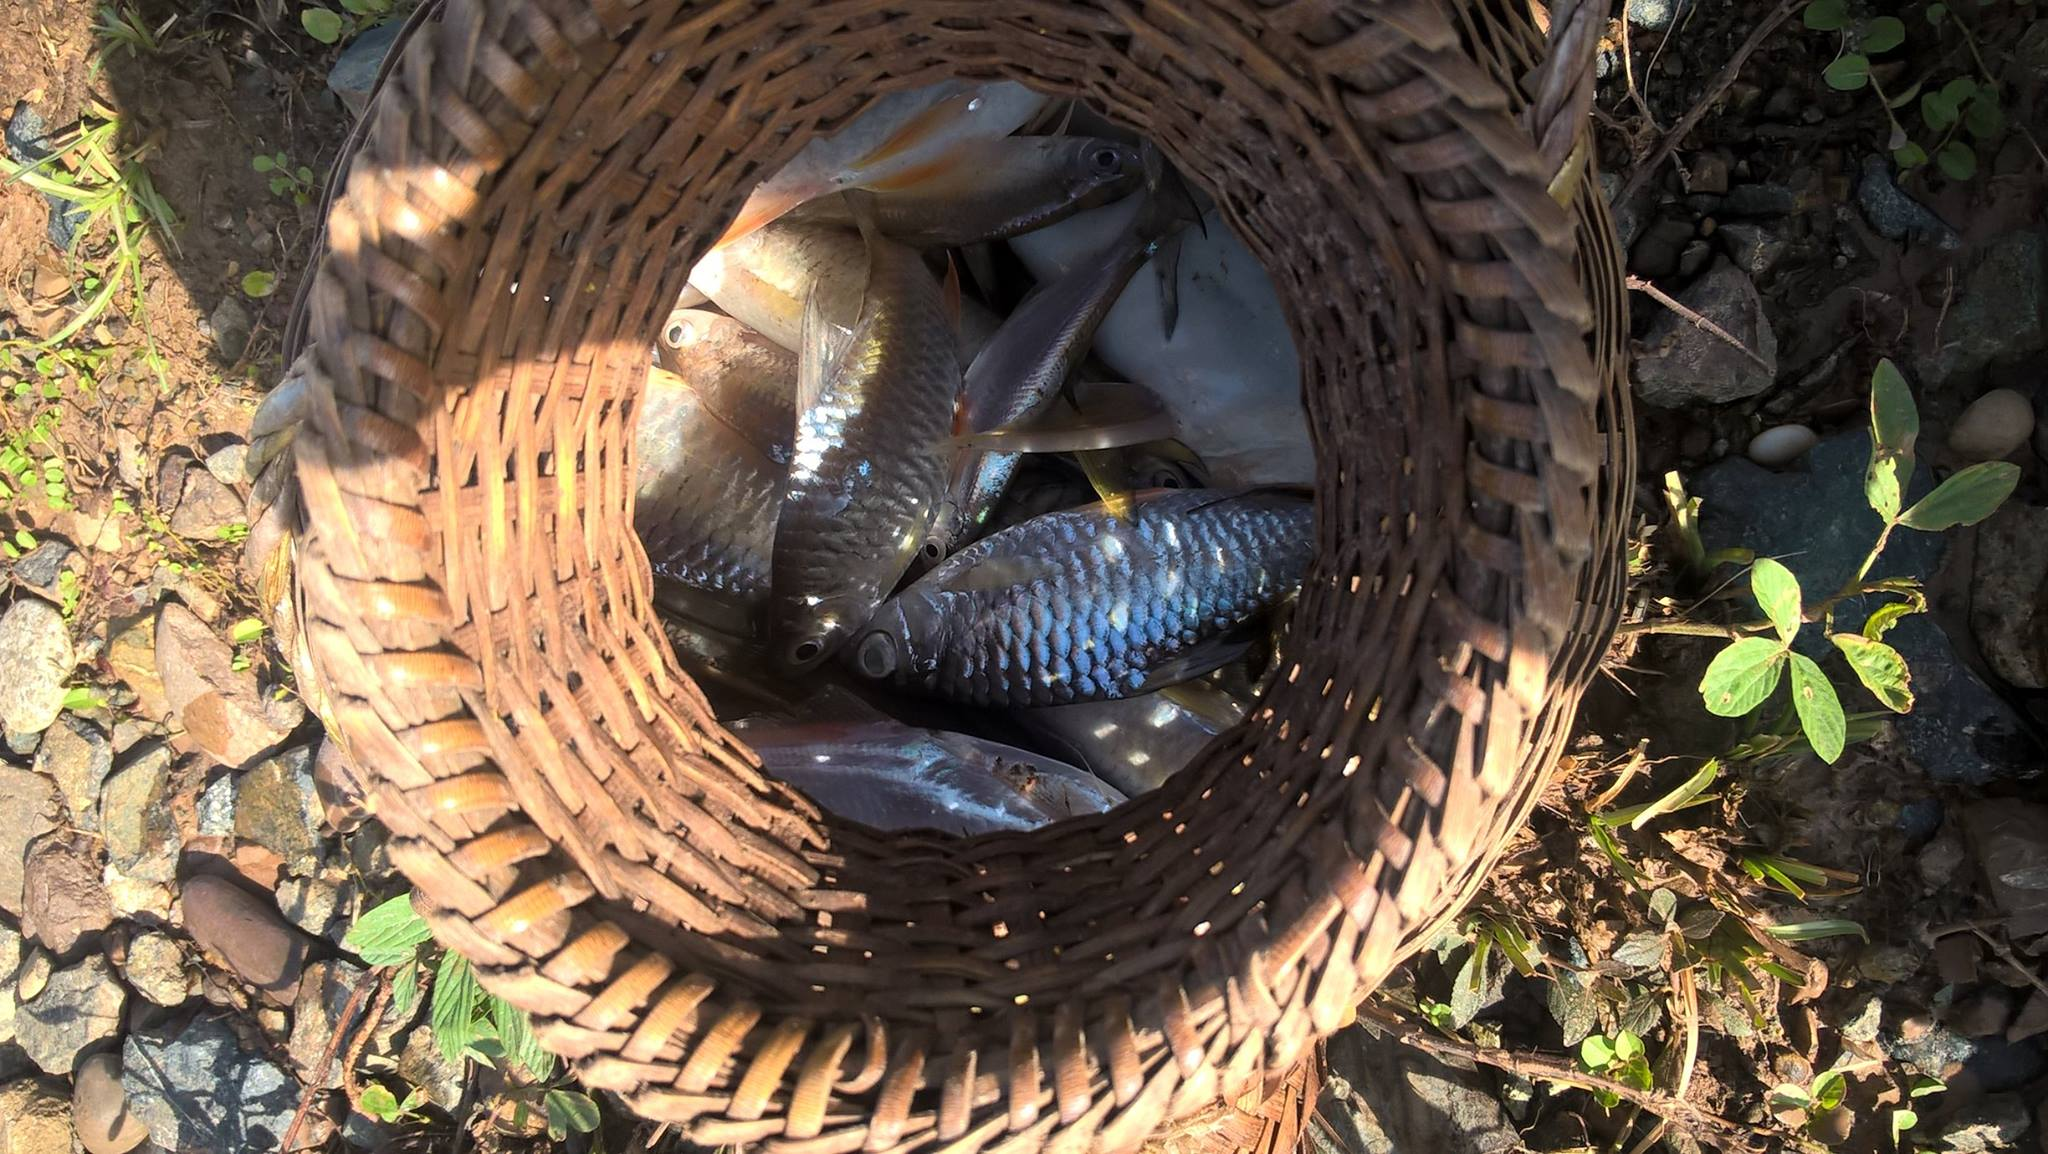 Catching fish is getting risk: A fisherman in Thadeua village spent almost three hours to get this amount of fish. Unlike in the past, they got more and spent less hours. Xayaburi province. September, 2015.